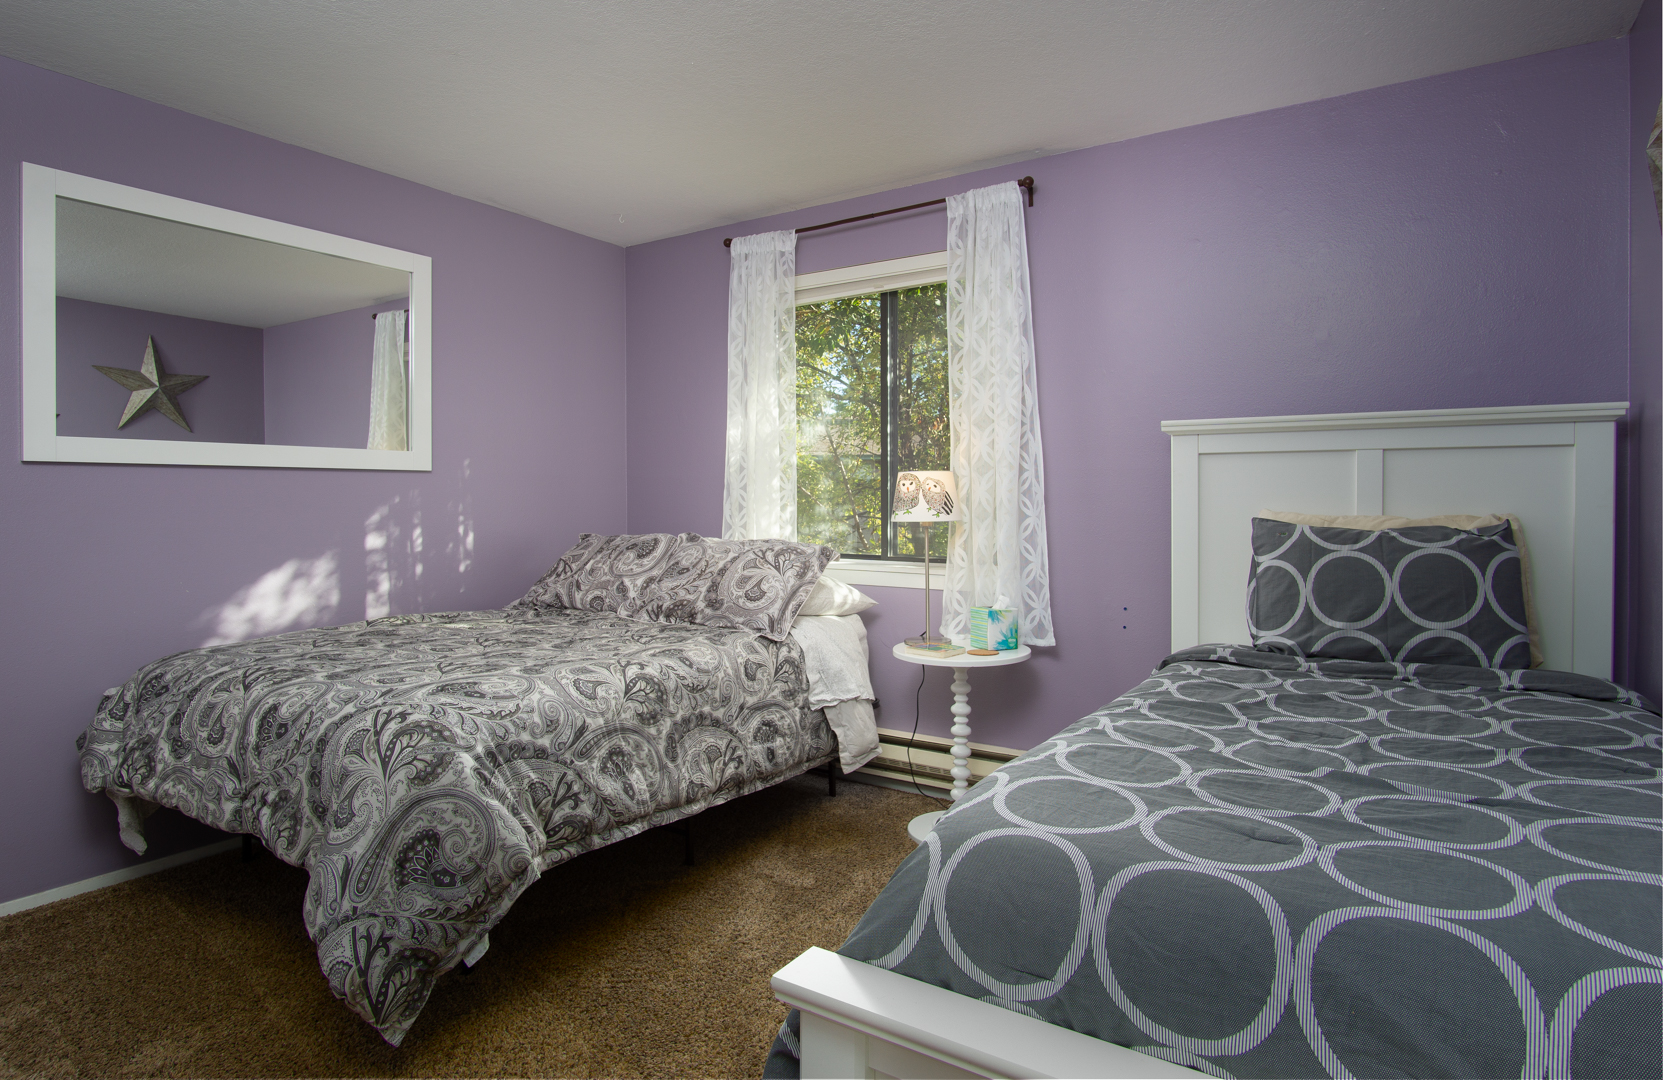 Bedroom Three Features a Full and Twin Bed